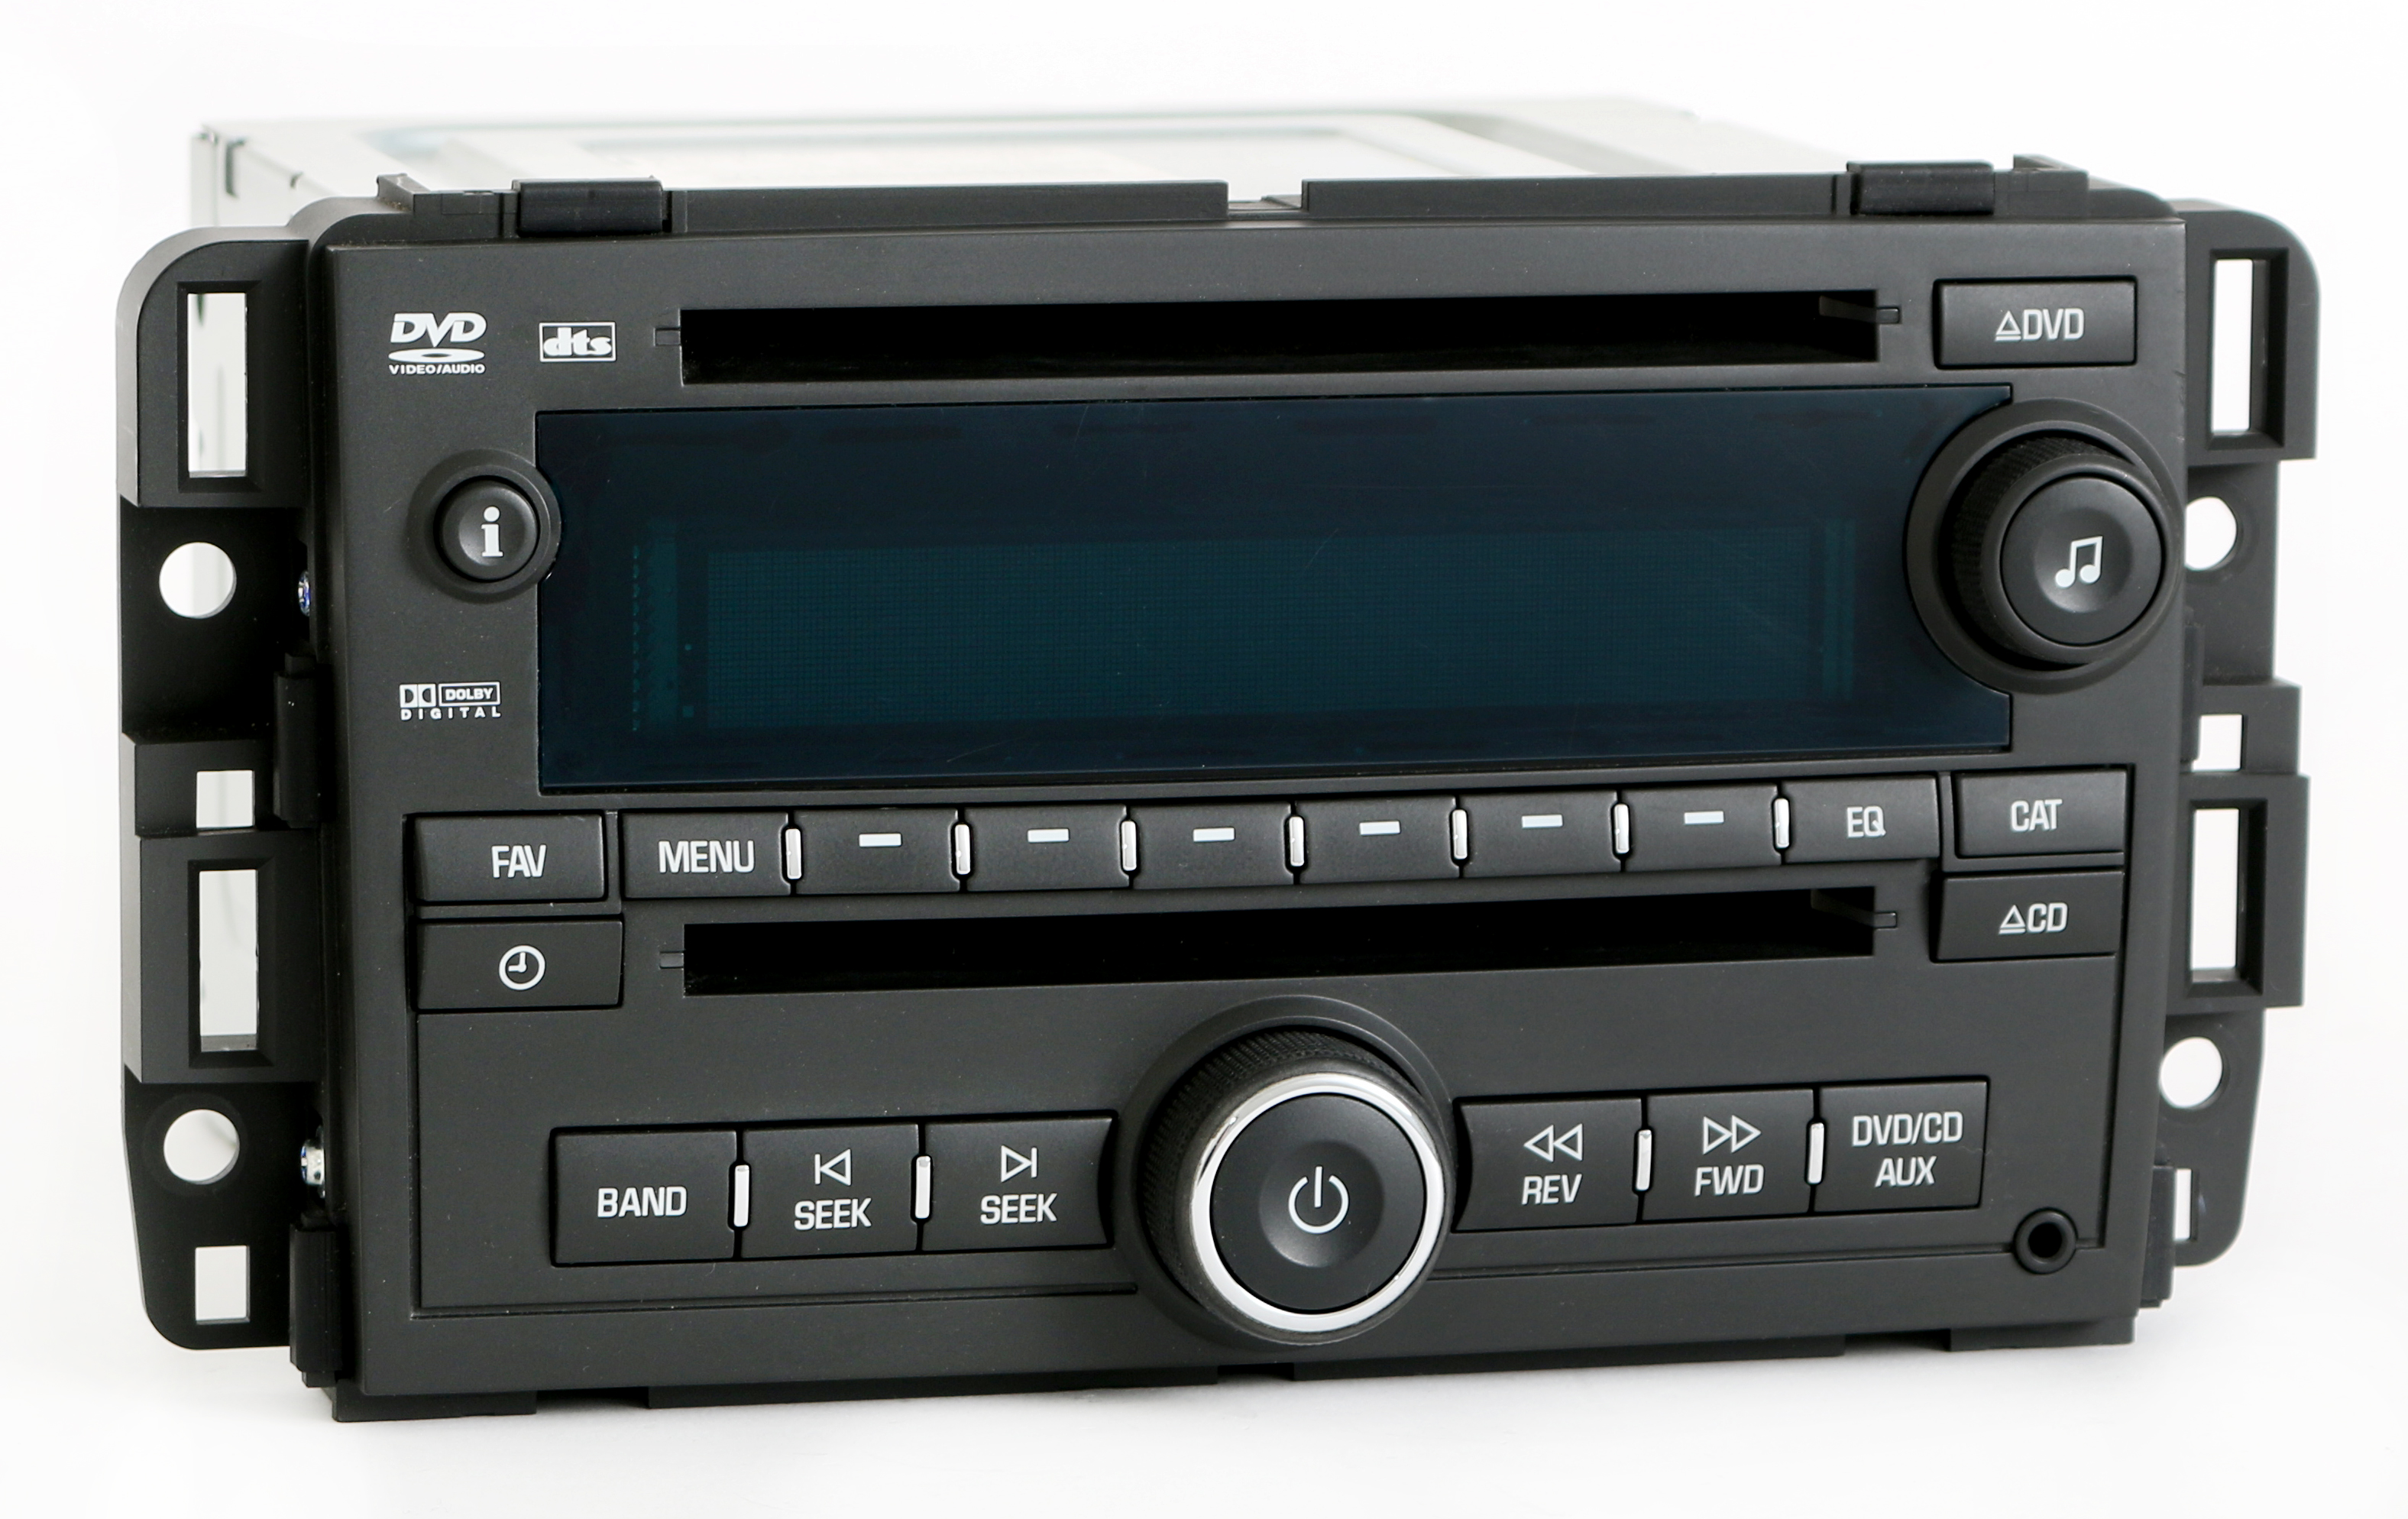 chevy gmc truck 2007 2008 radio am fm mp3 cd dvd player part chevy gmc truck 2007 2008 radio am fm mp3 cd dvd player part number 25840249 uva 1 factory radio